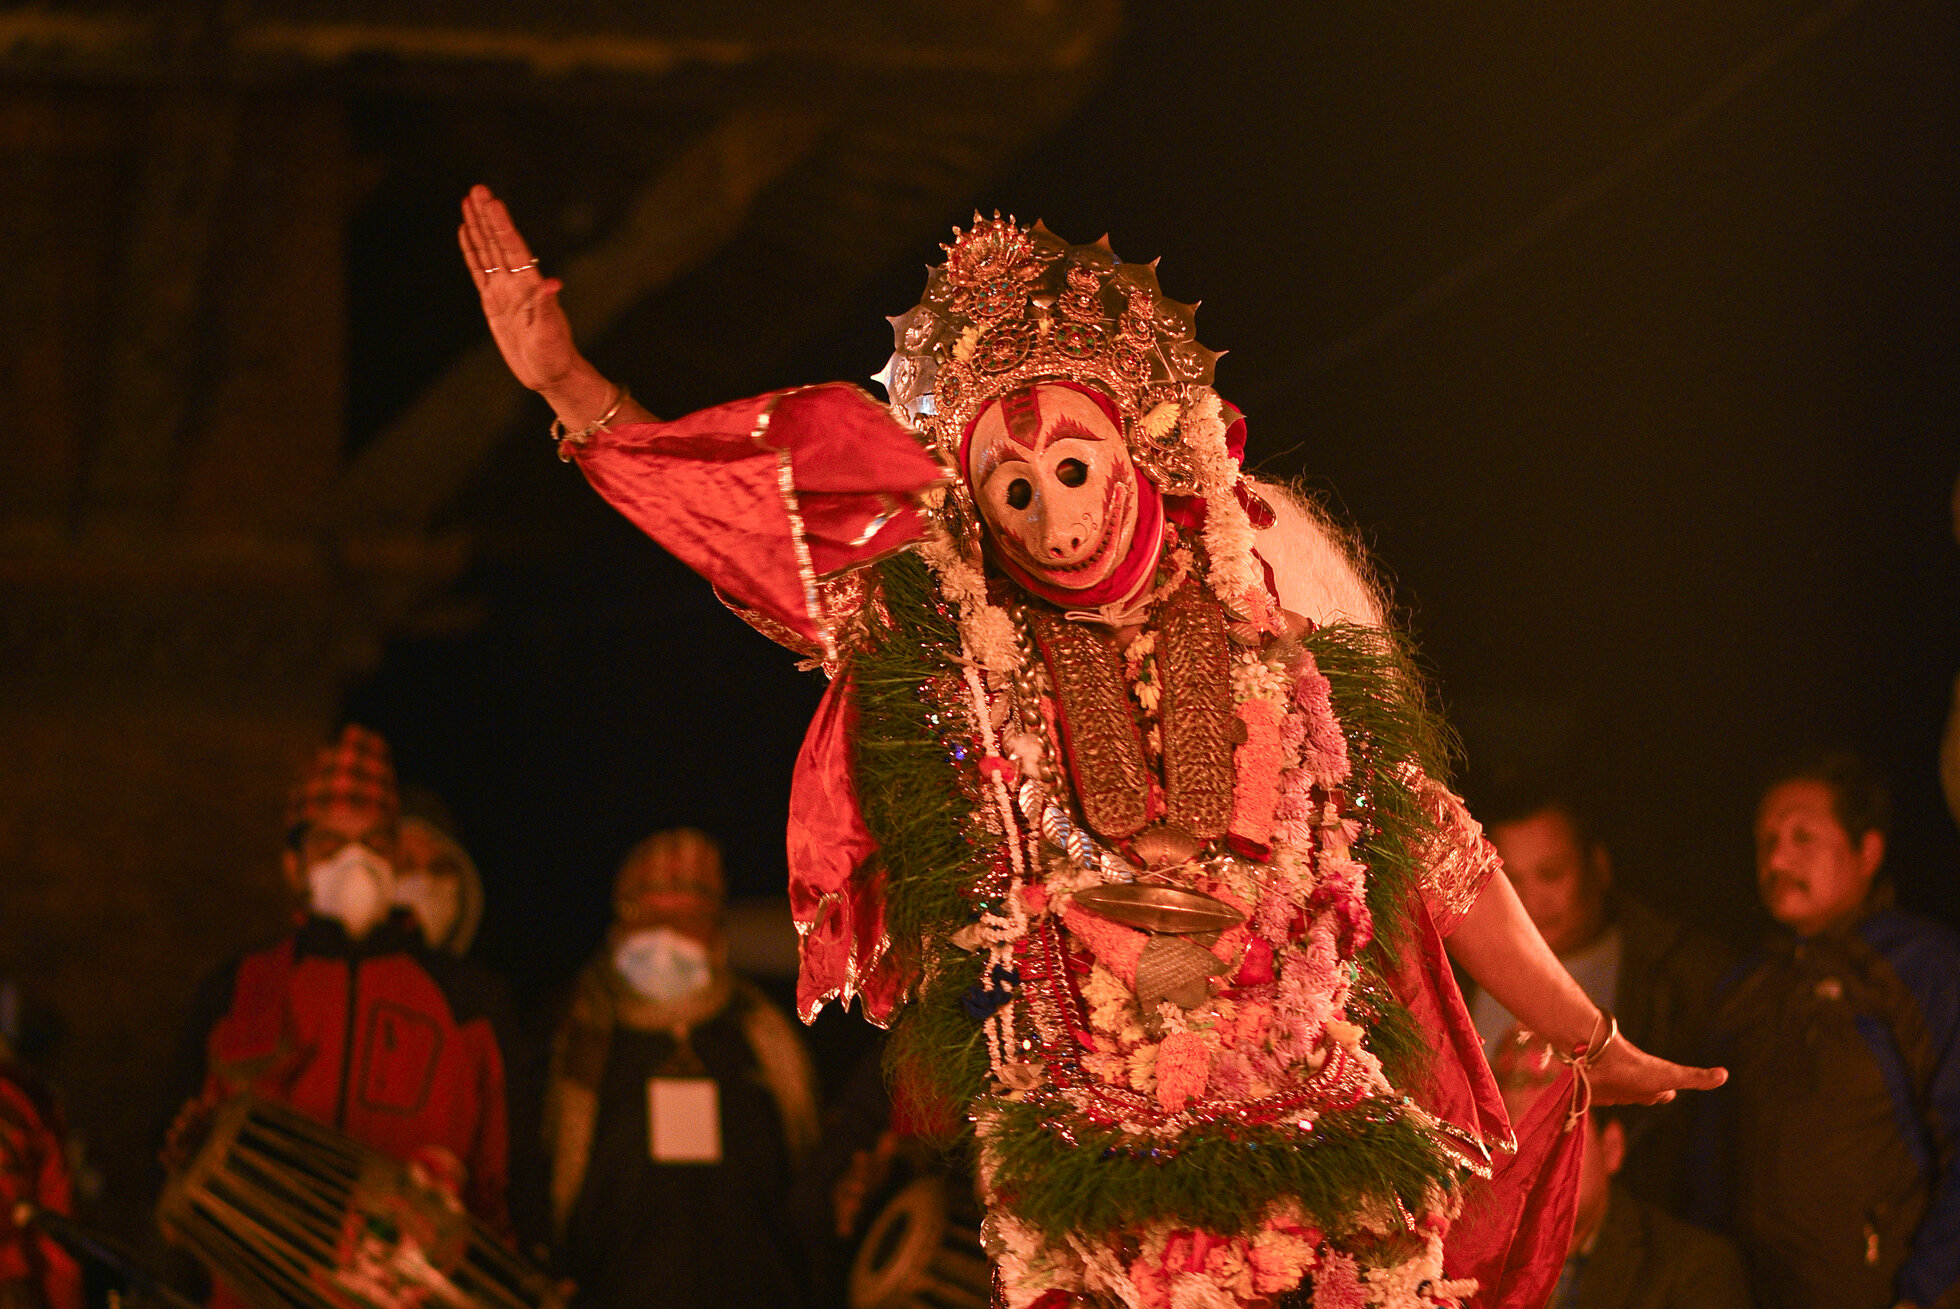 Patan's dance of the deities